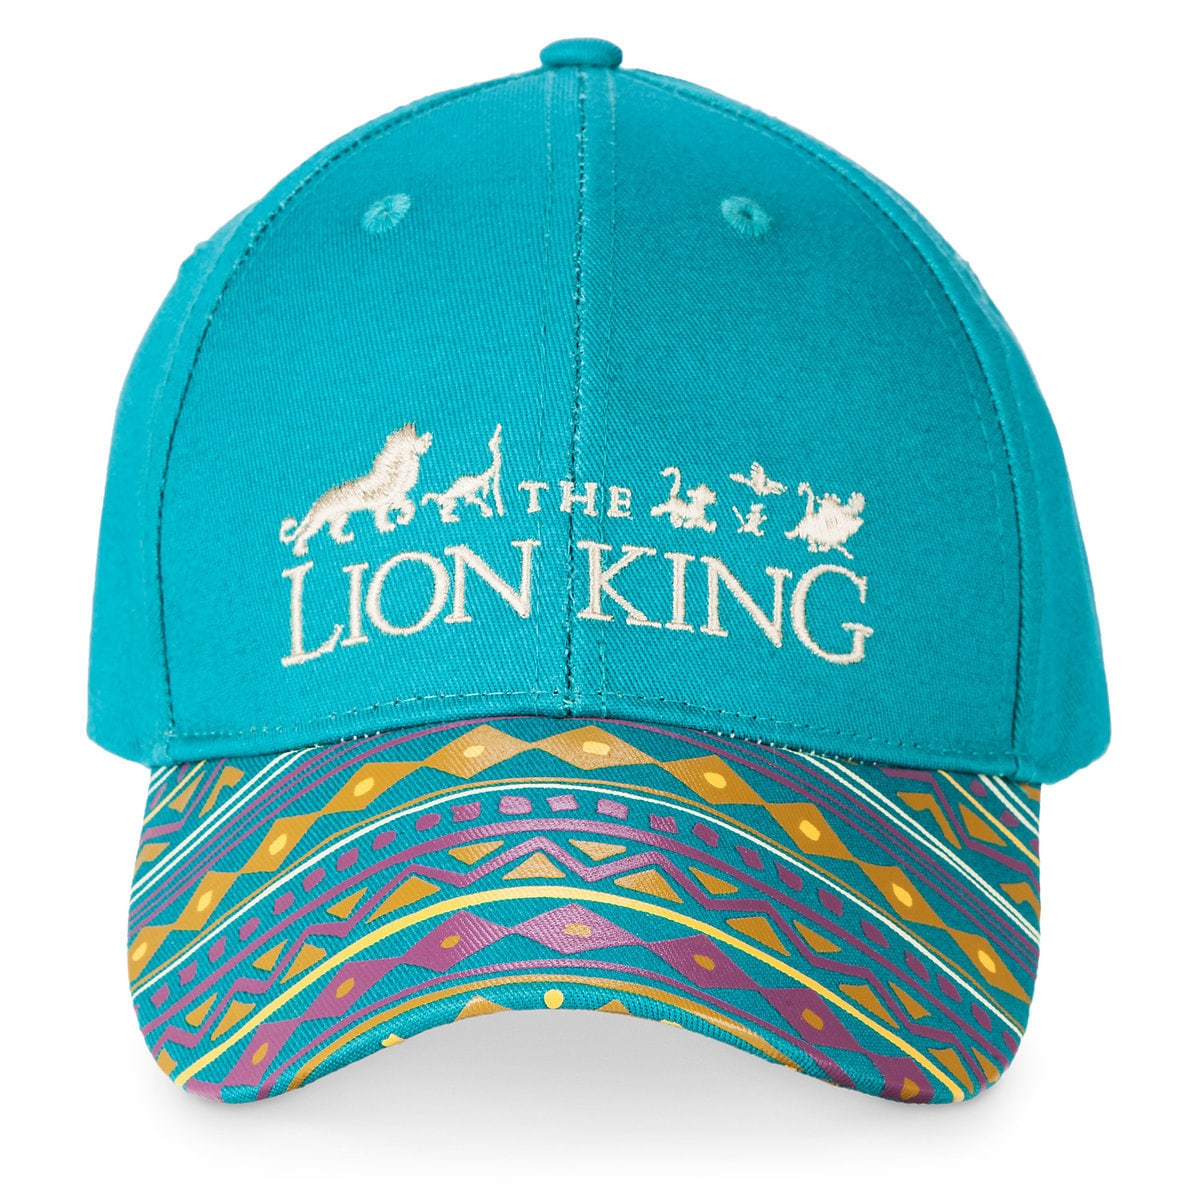 141b0022f Product Image of The Lion King Baseball Cap for Adults by Cakeworthy # 1